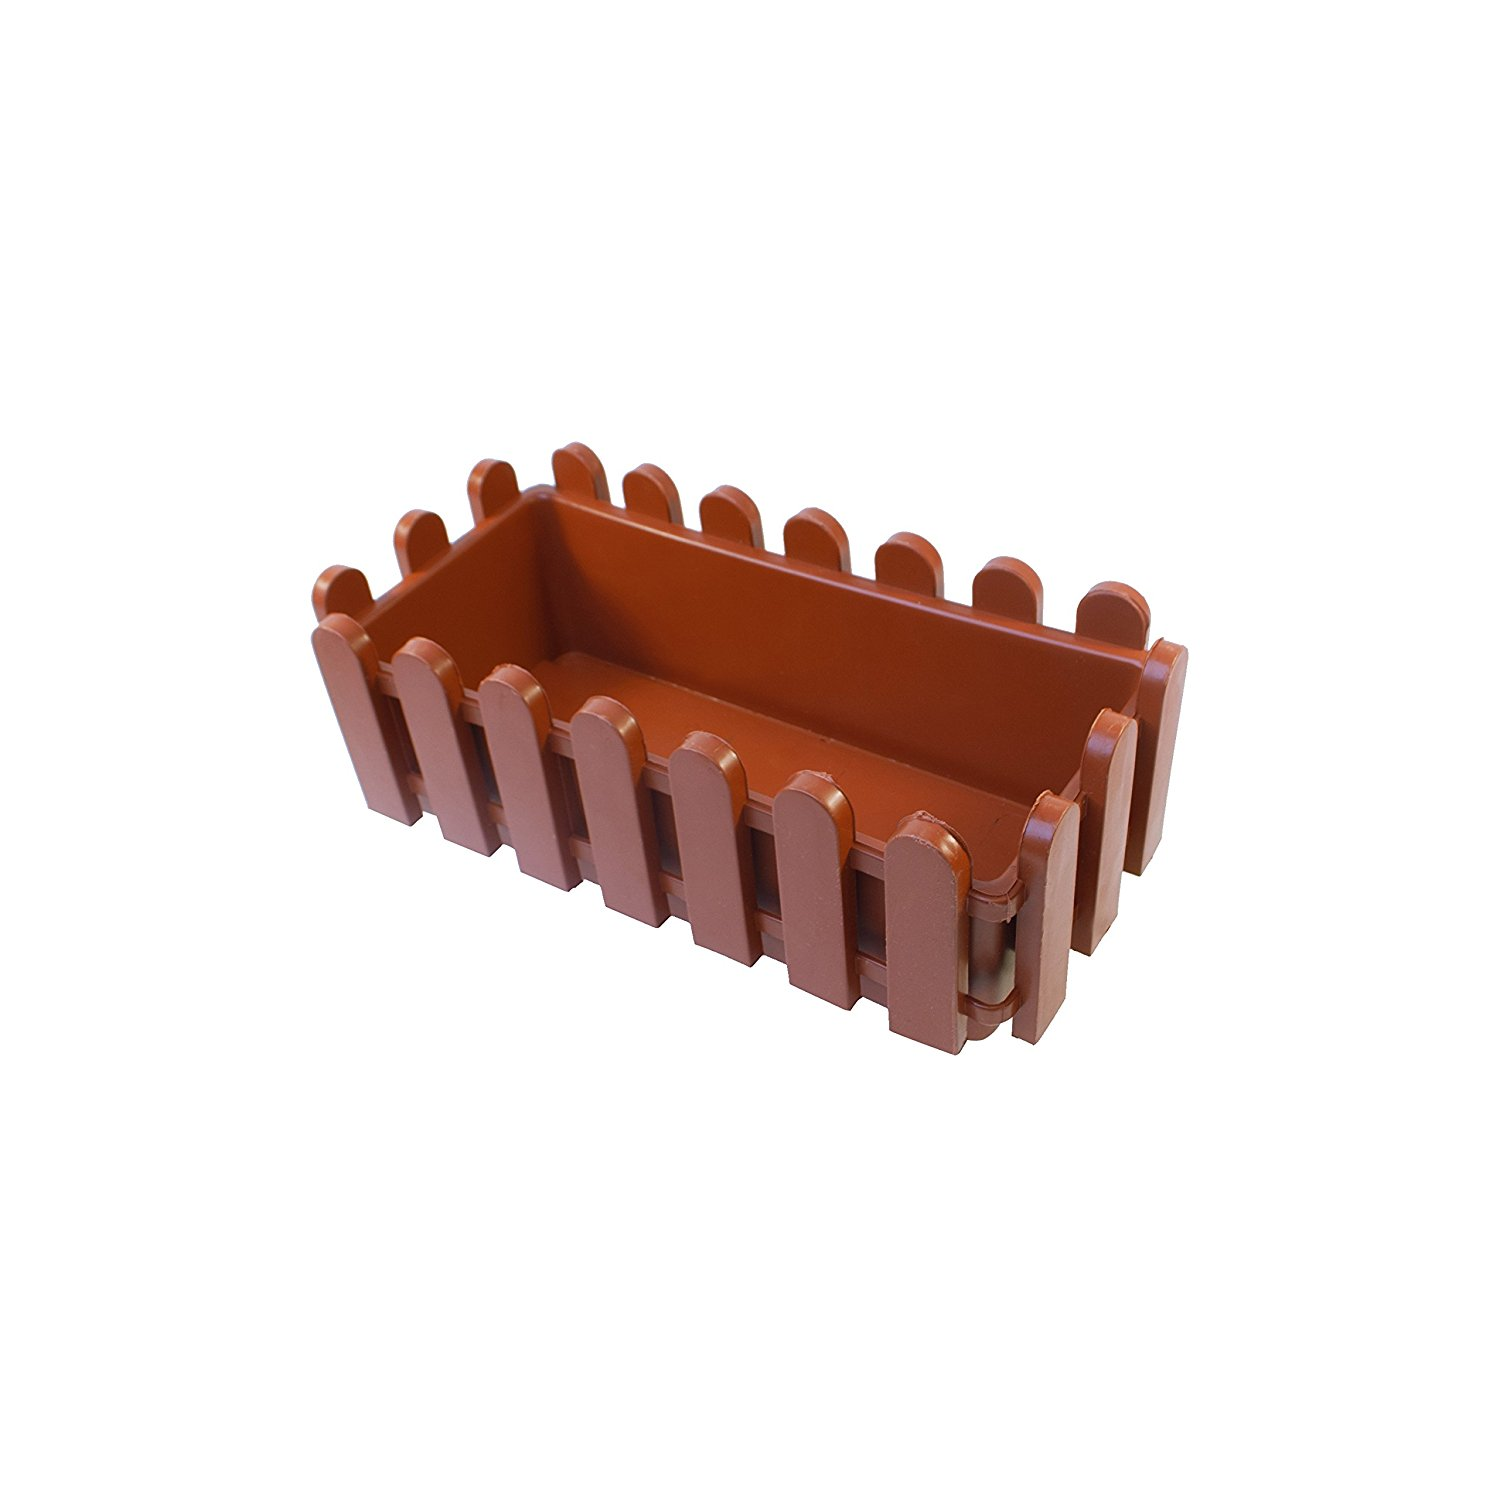 Terra Cotta Thermoformed Picket Fence Nursery Plastic Garden Seedling Pots